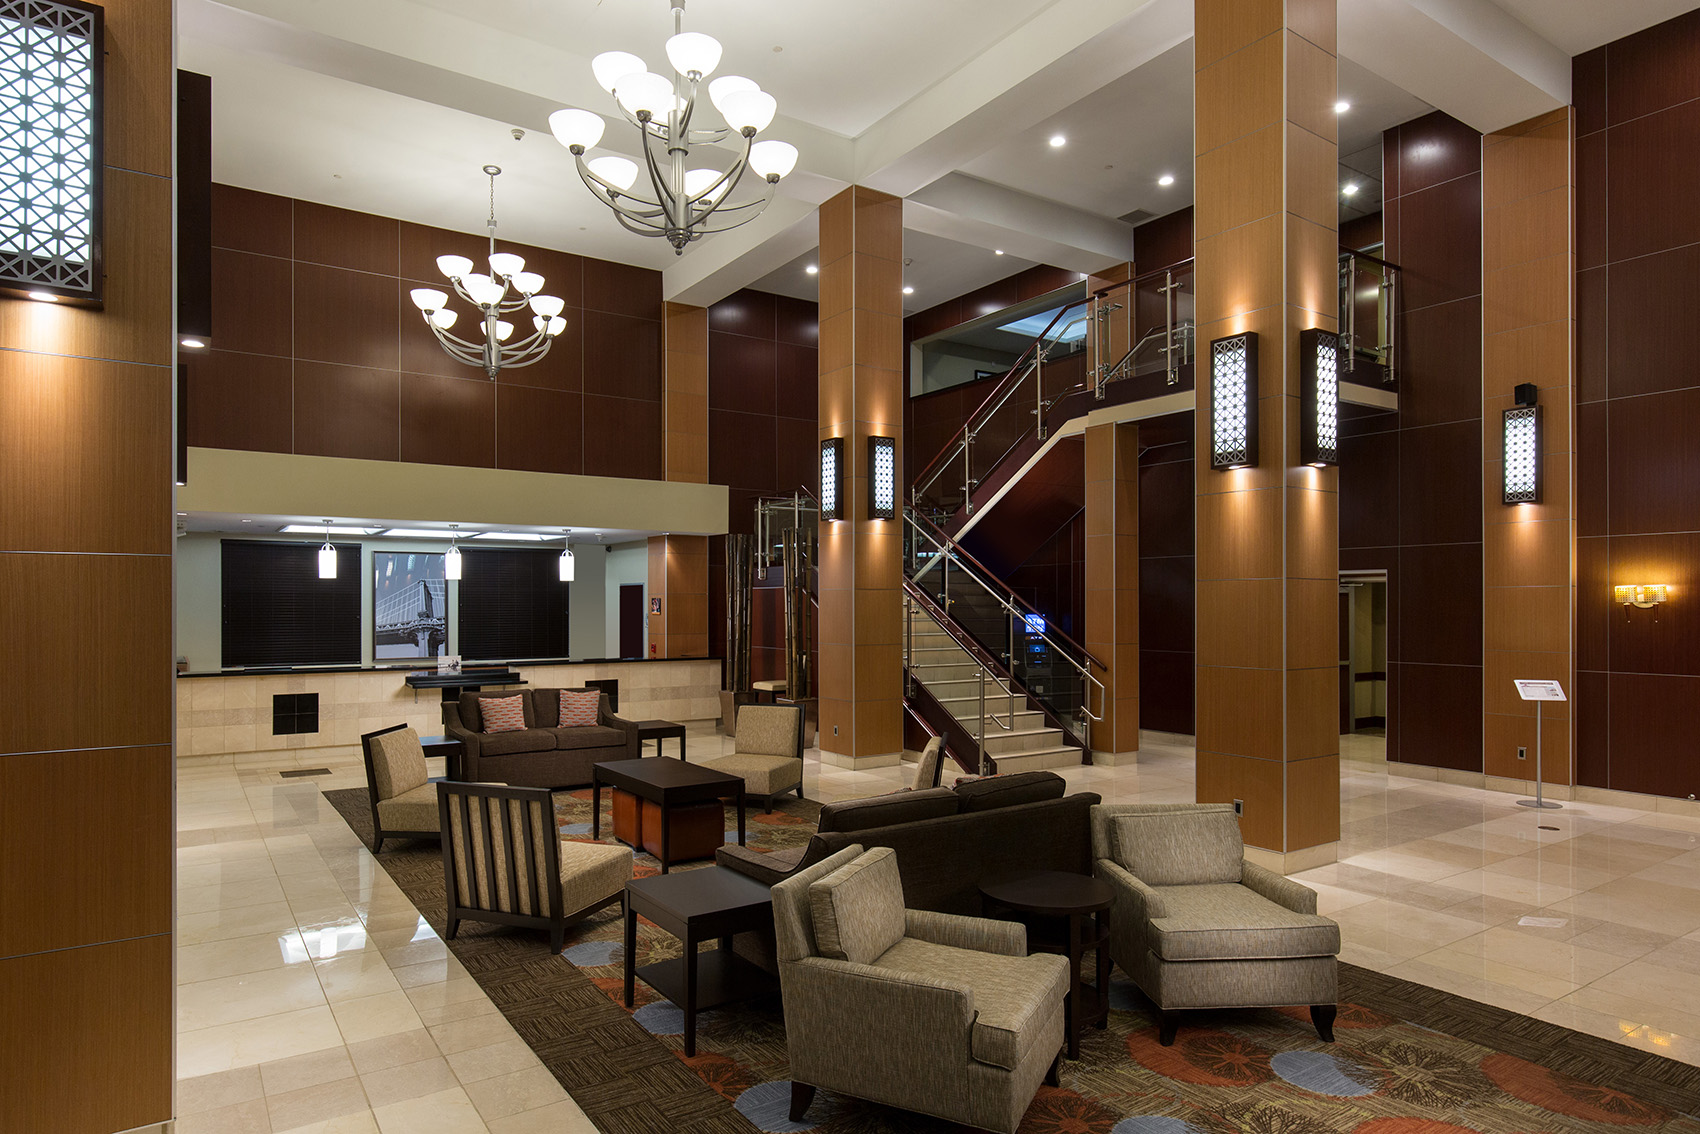 Las Vegas Staybridge Suites Lobby